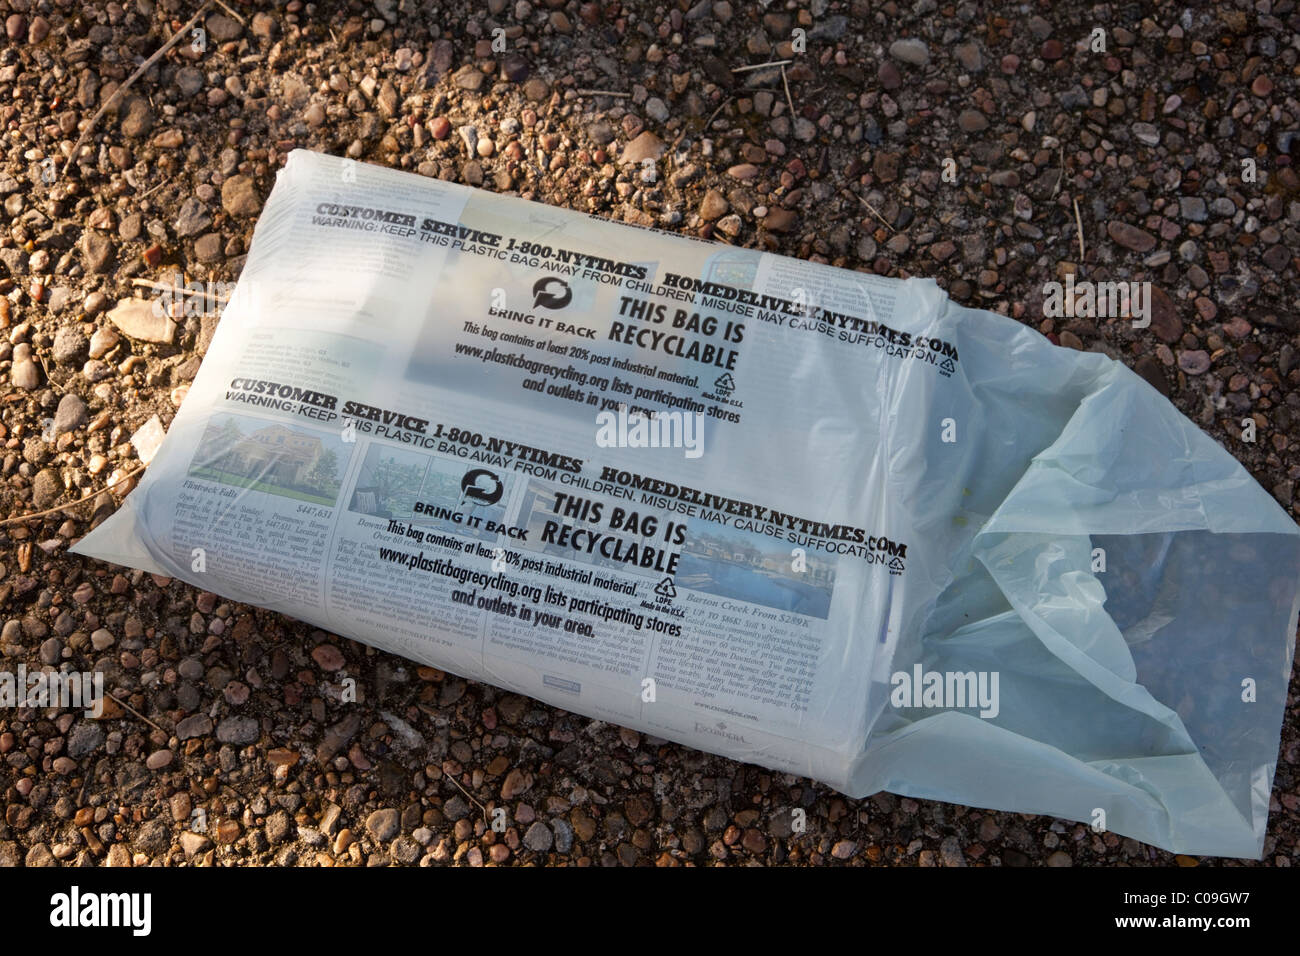 Home-delivered copy of daily newspaper wrapped in recyclable plastic bag rests on driveway of residence in Austin - Stock Image